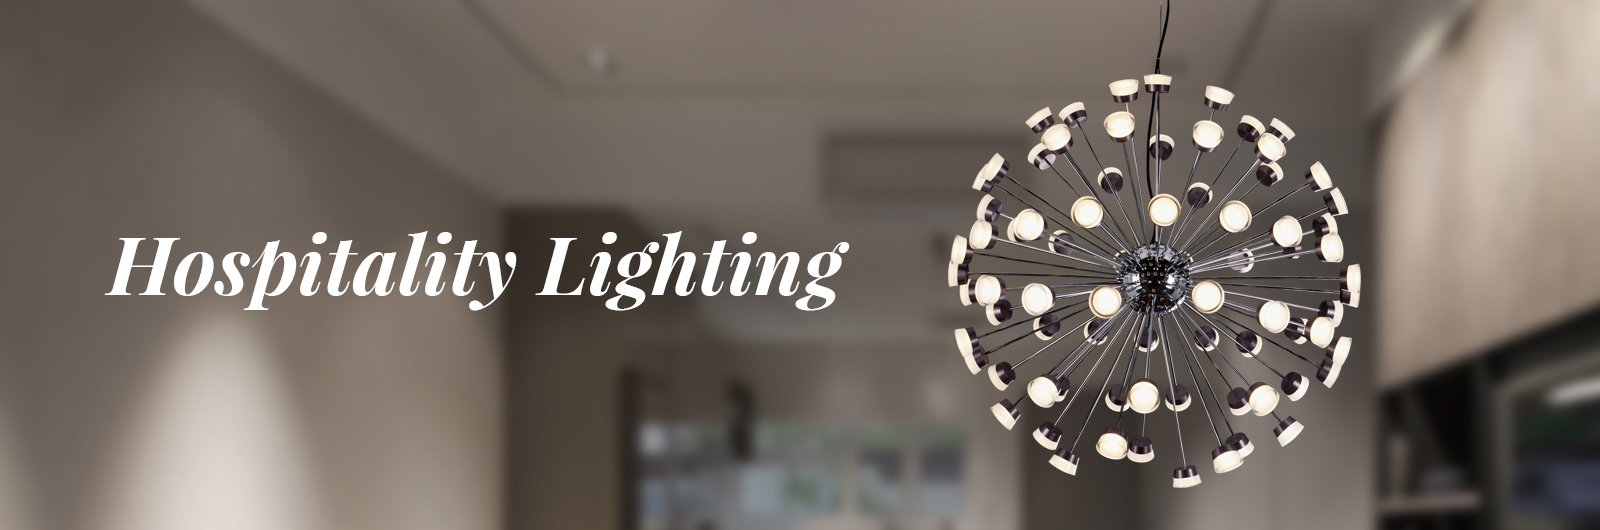 Lighting Online Lighting Fixtures Online Decorative Light Supplier In Canada